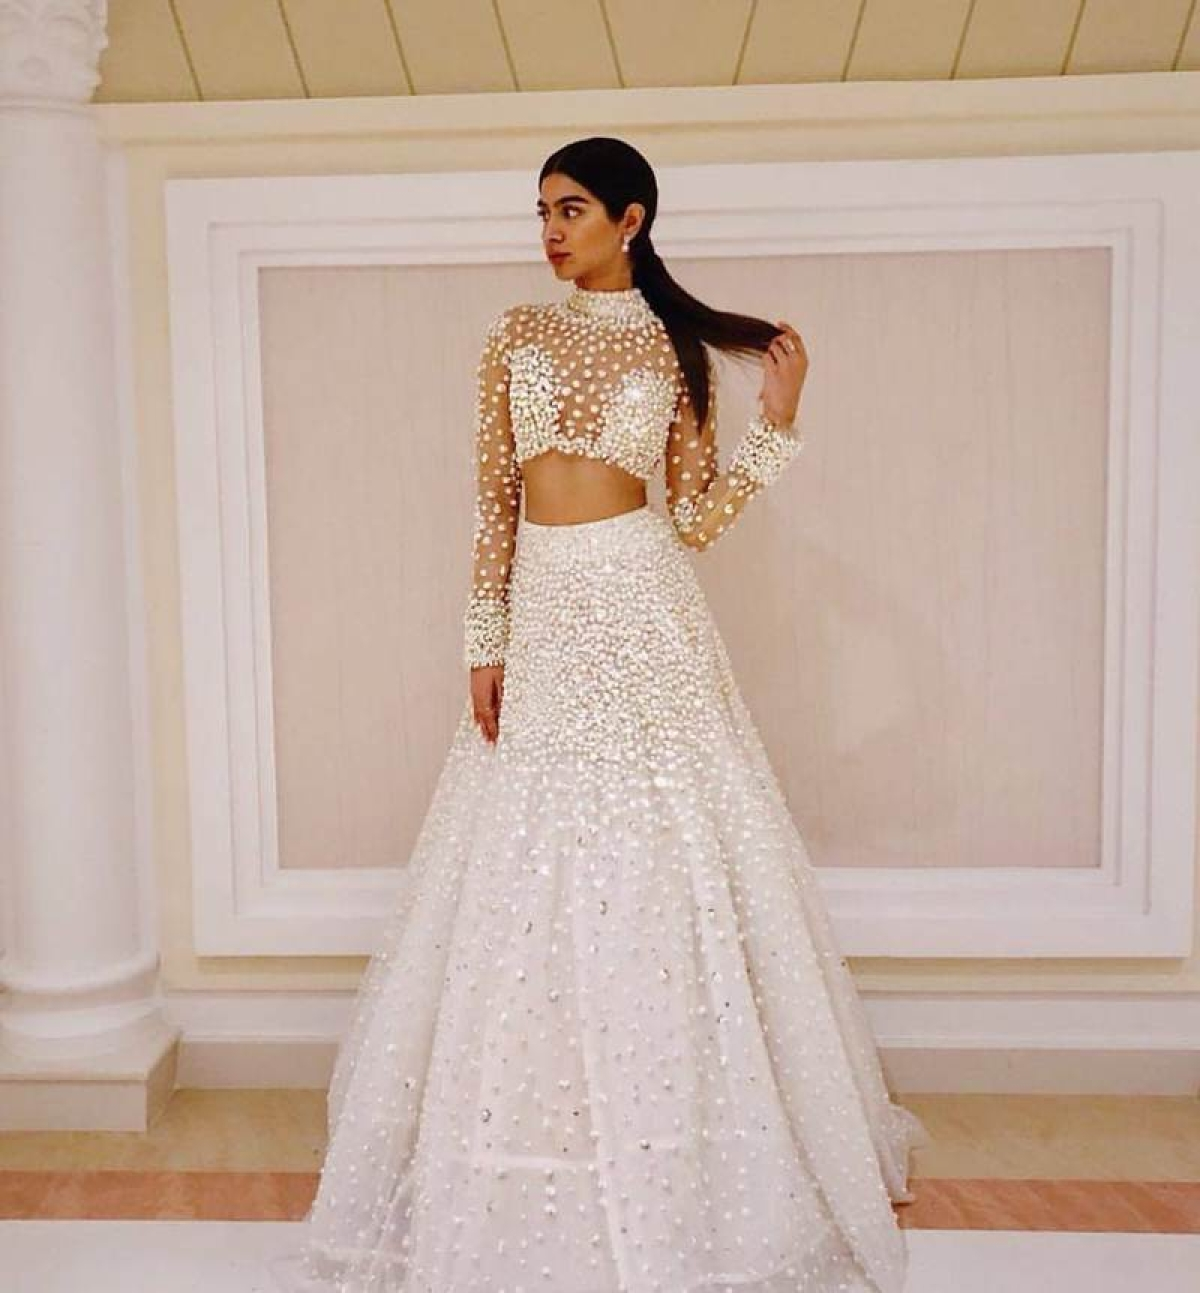 Sridevi's younger daughter Khushi Kapoor is a budding fashionista, see pics